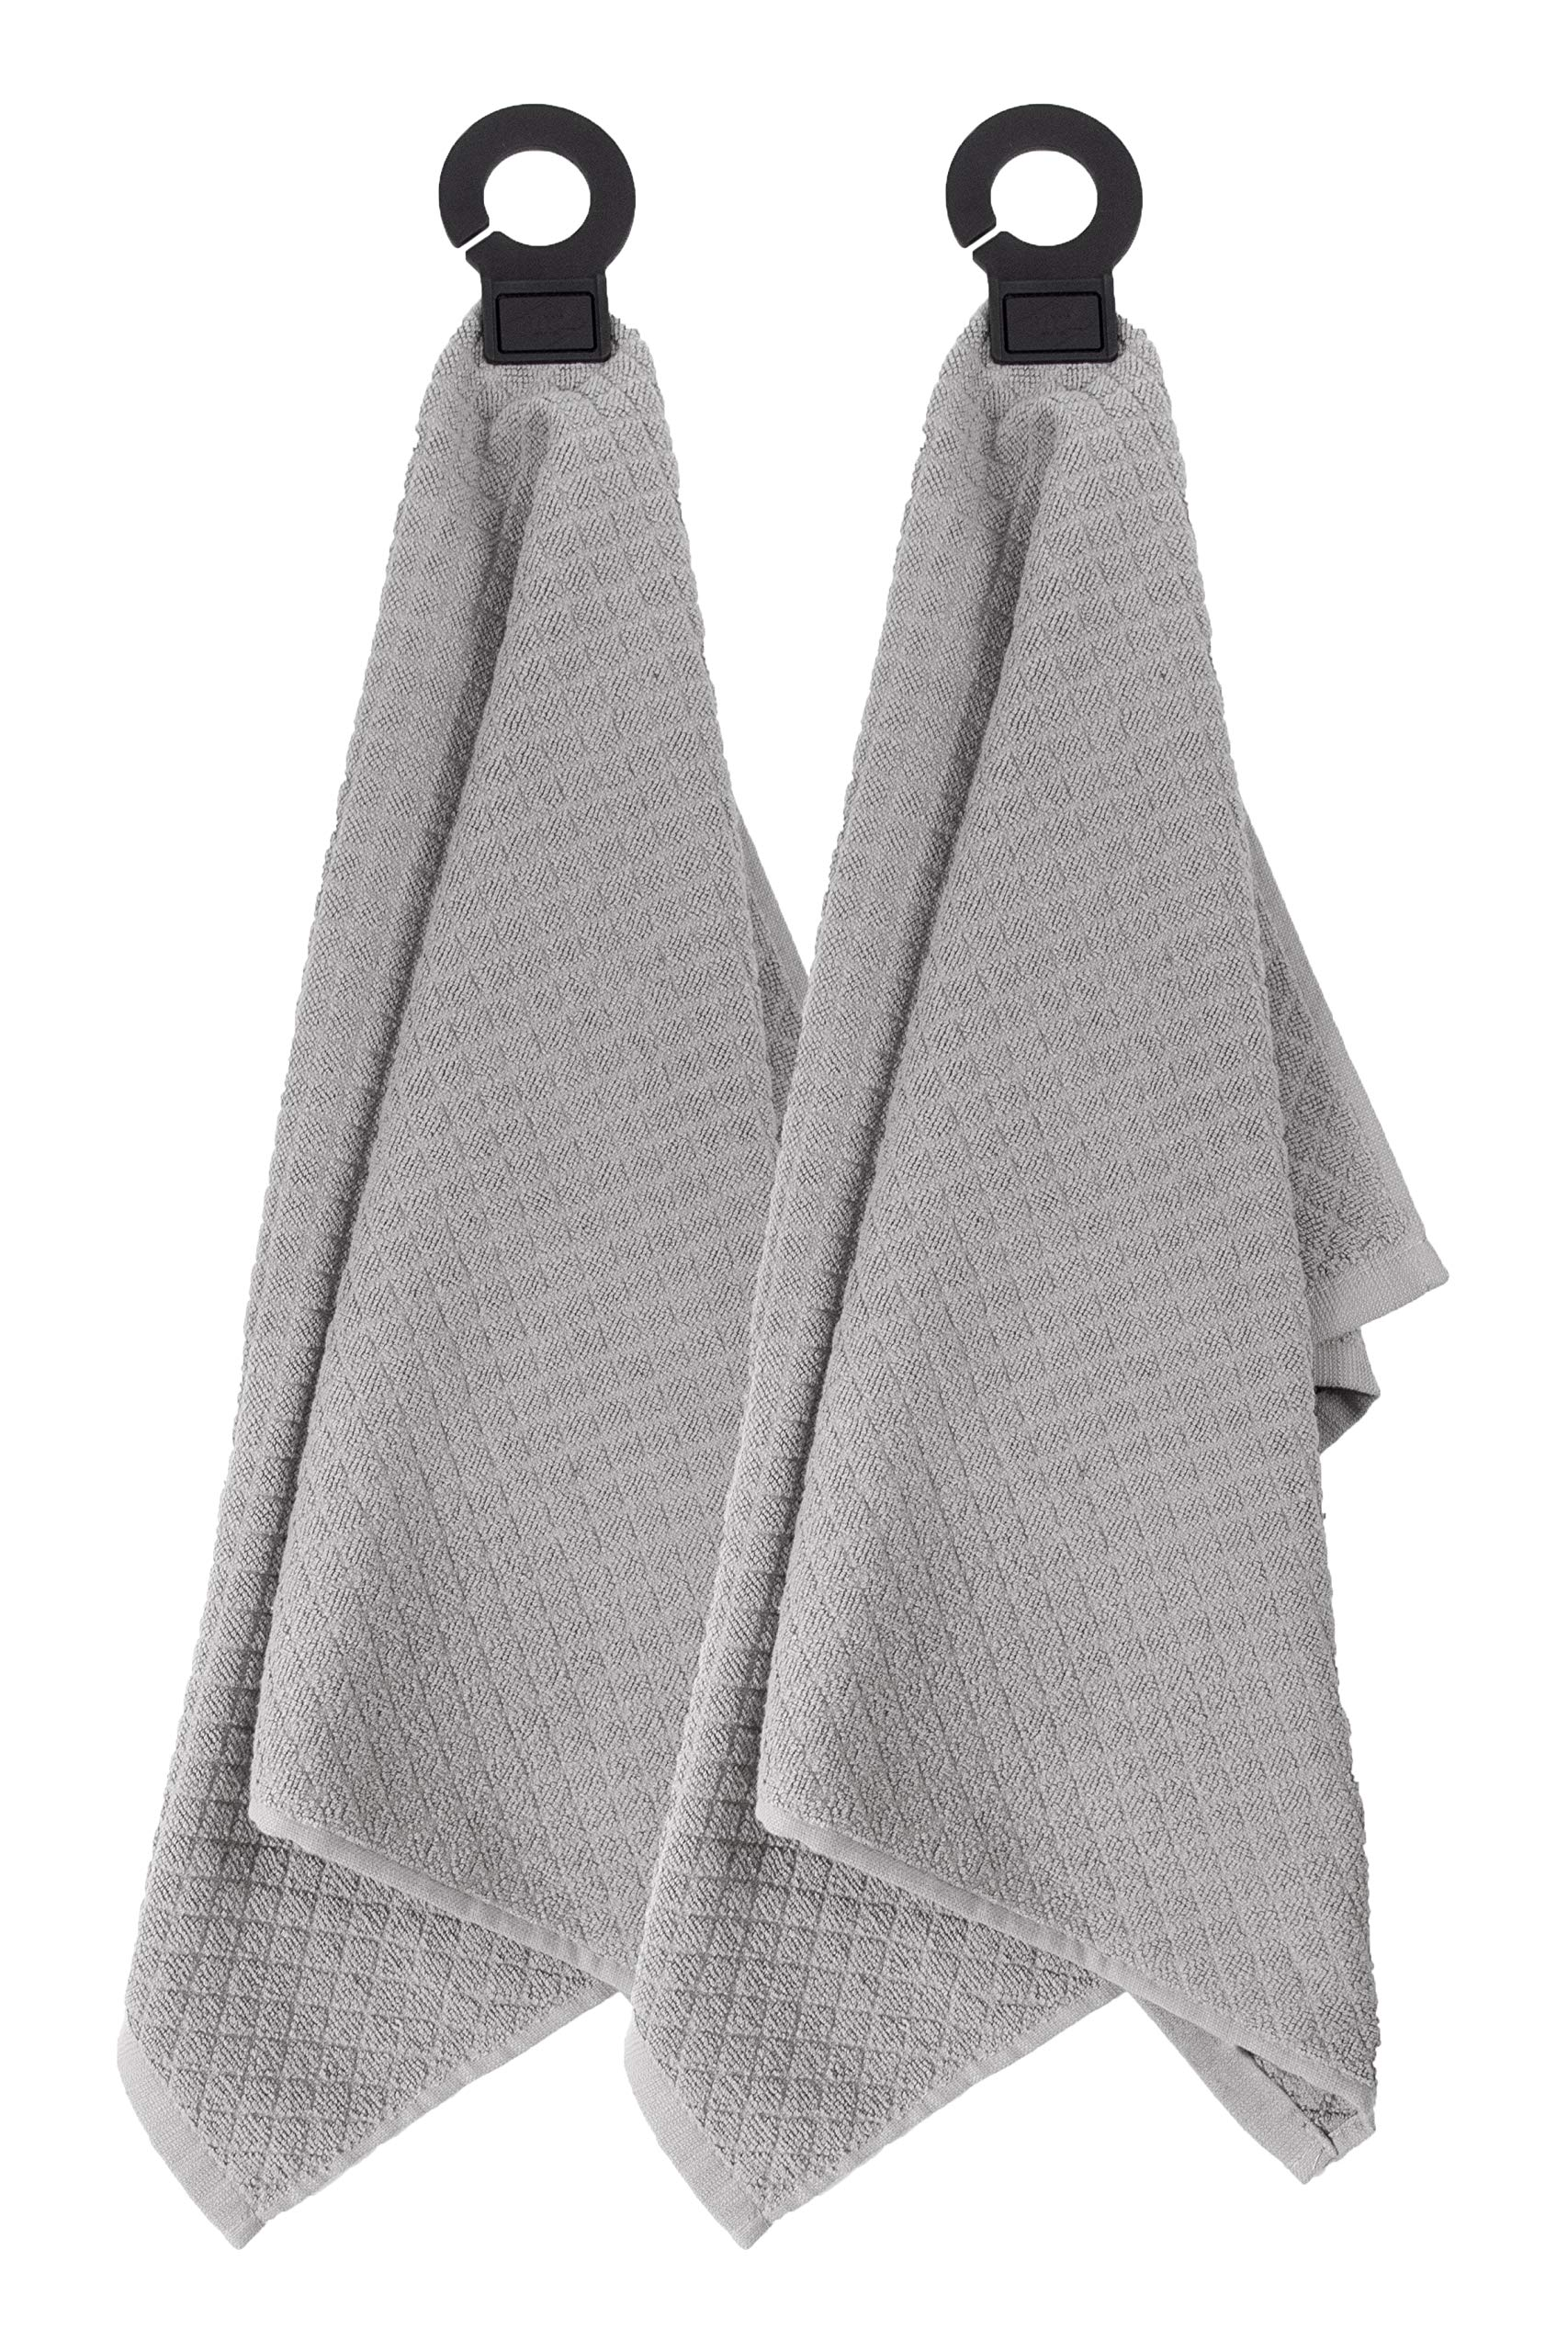 Ritz Hook and Hang Towel with Permanent Rubber Hook for Kitchen, Bathroom, Mudroom, Laundry Room, Extra-Large, 18'' X 28'', Machine Washable, 2 Pack, Titanium by Ritz